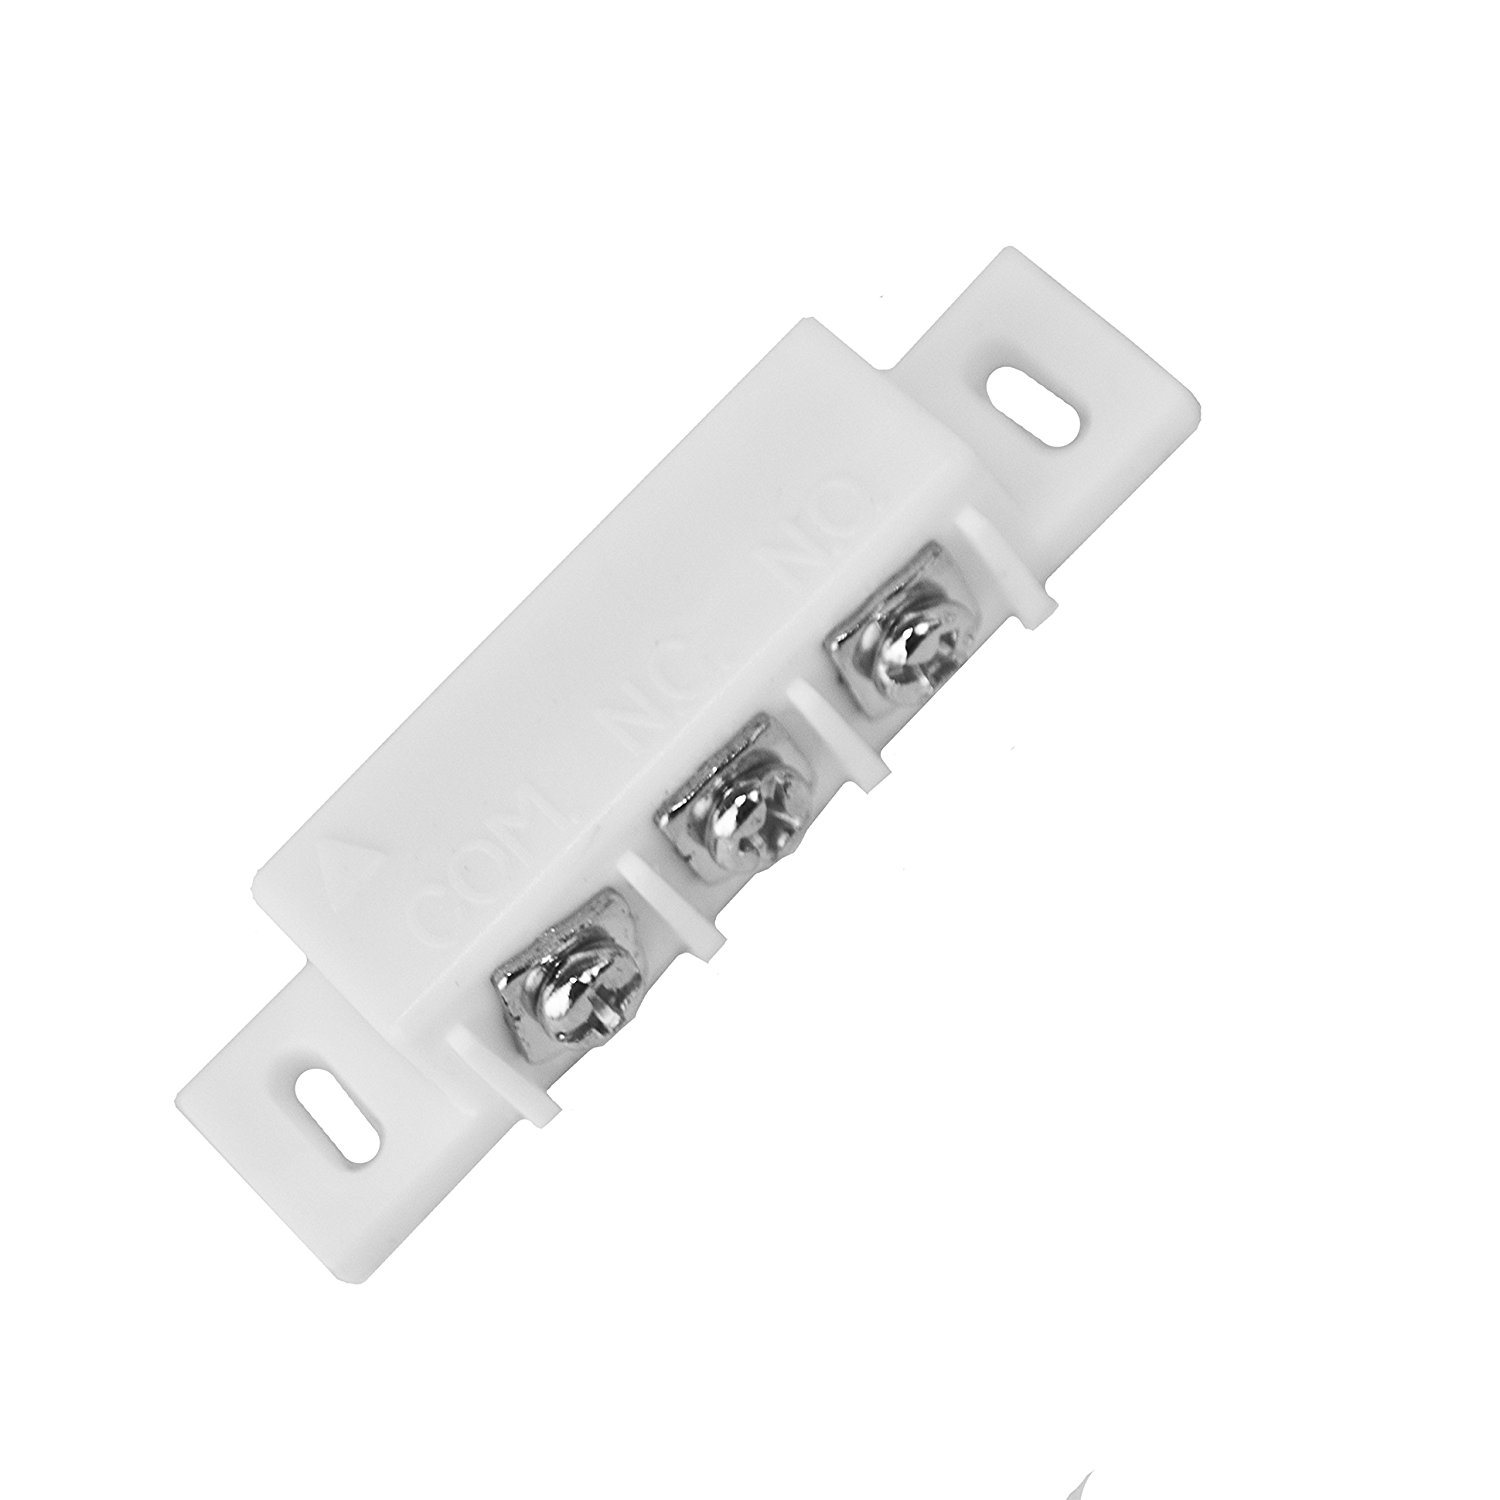 1 Set Magnetic Contact Reed Switch Security Alarm Contact For Doors Windows